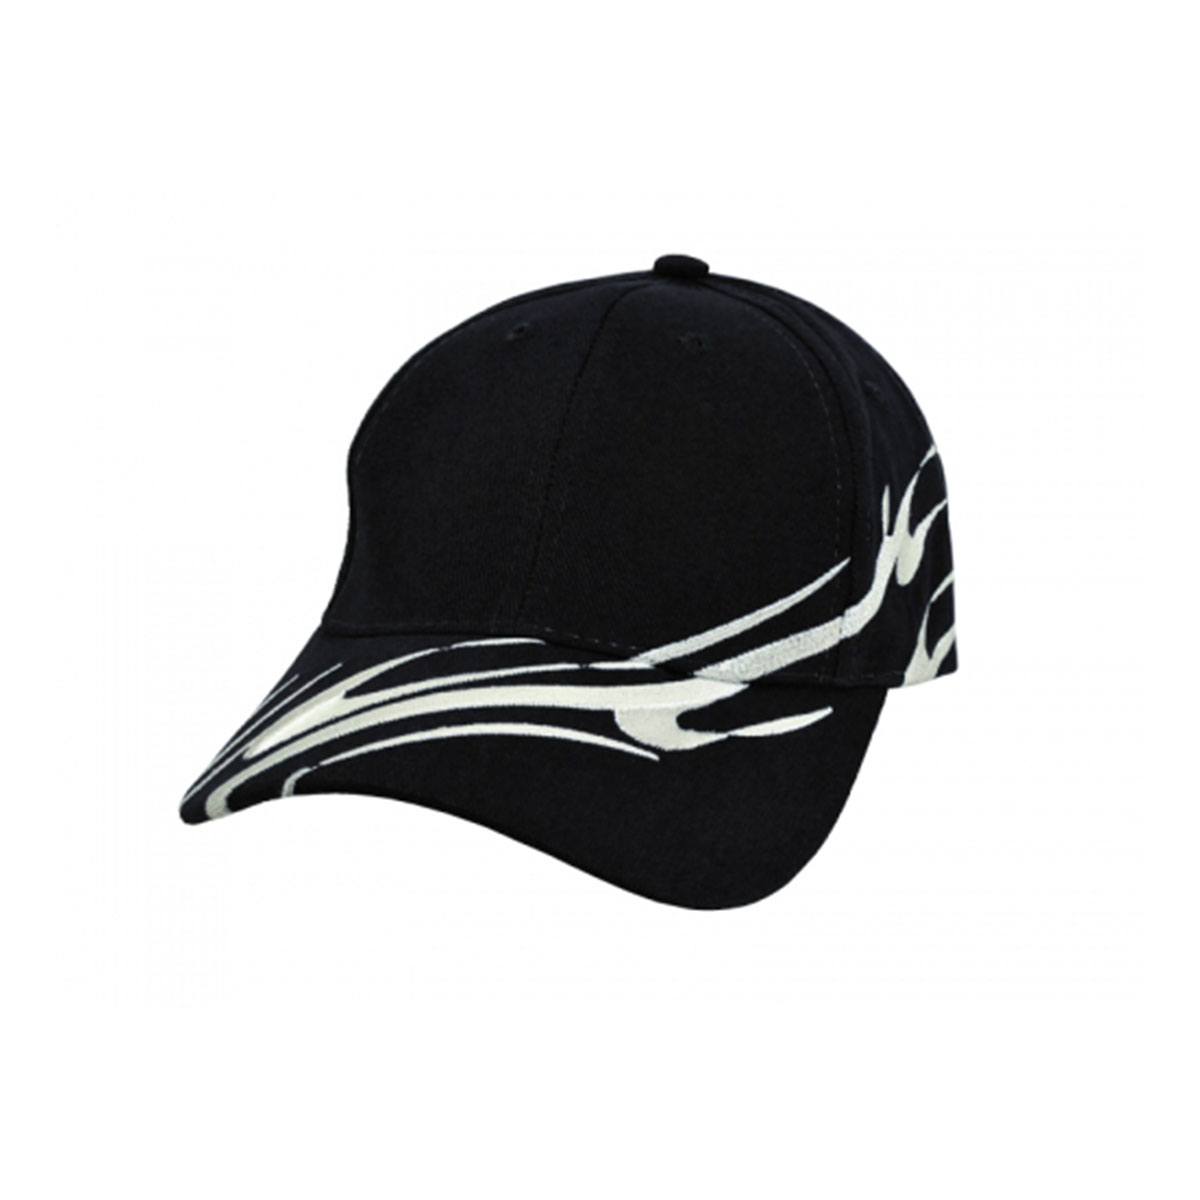 Wave Cap-Black / White